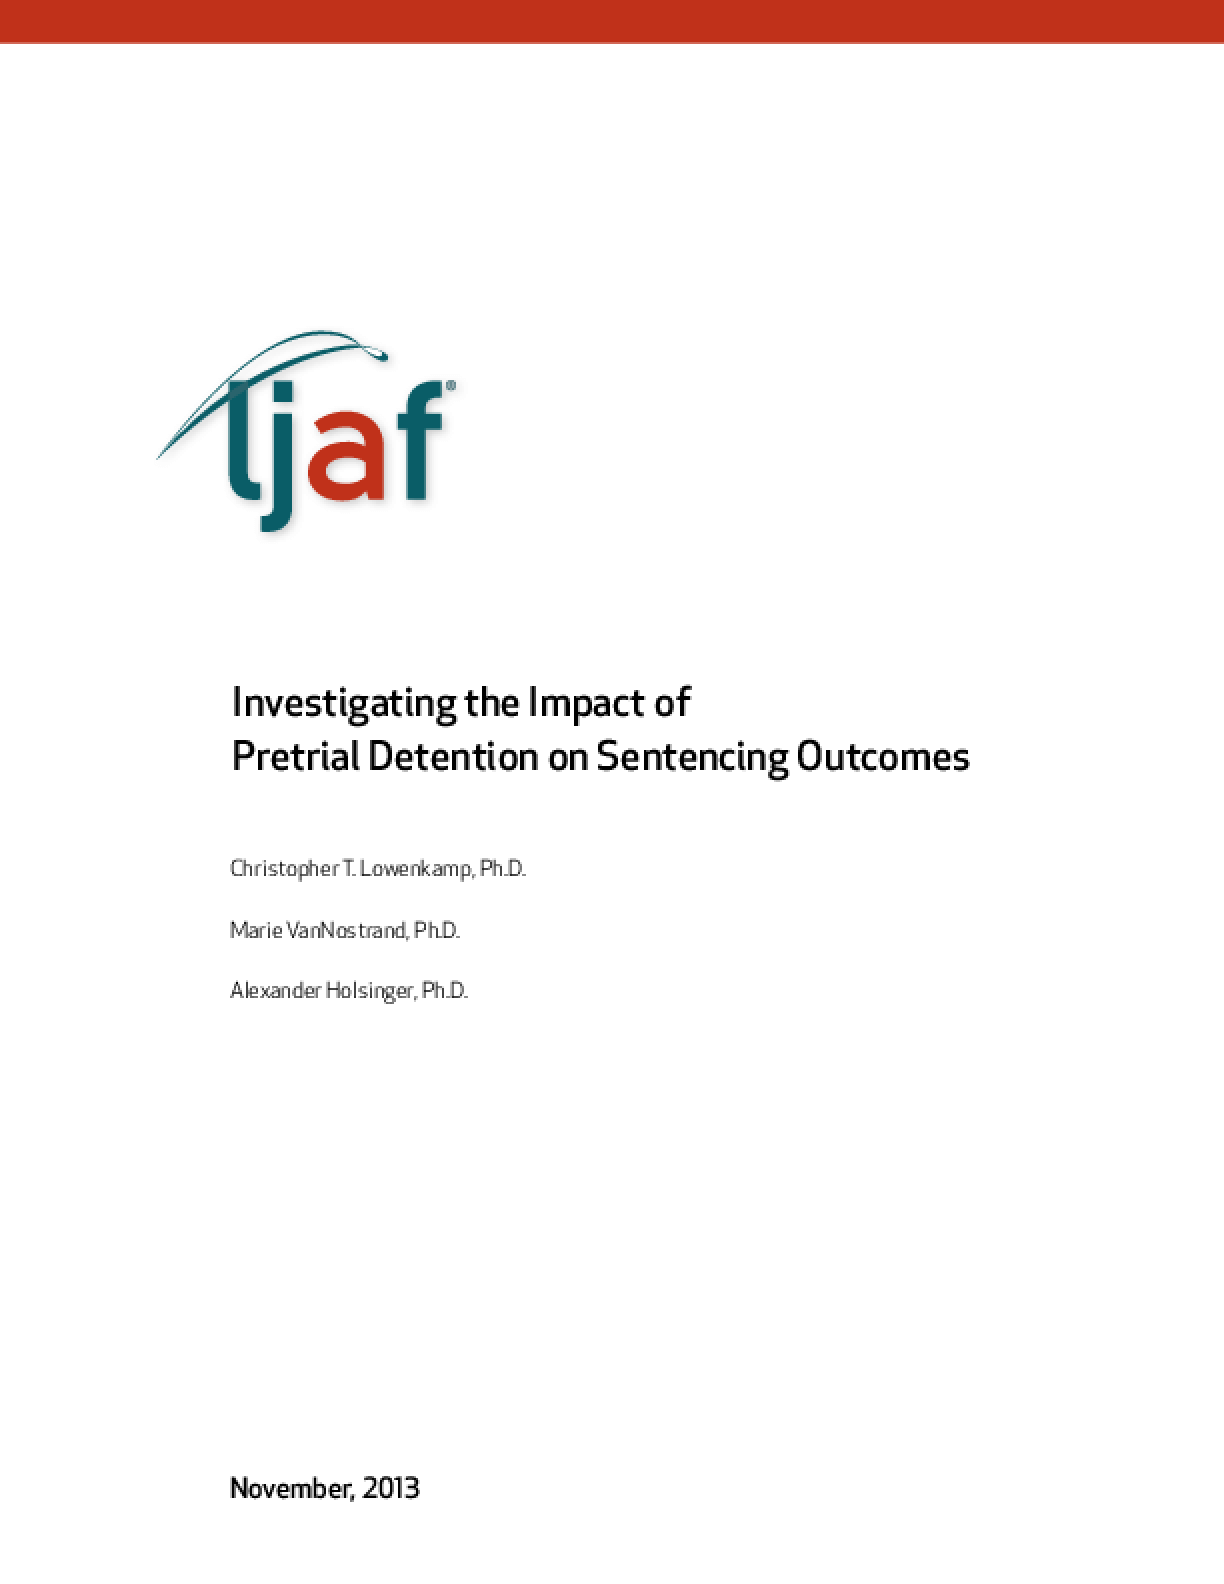 Investigating the Impact of Pretrial Detention on Sentencing Outcomes